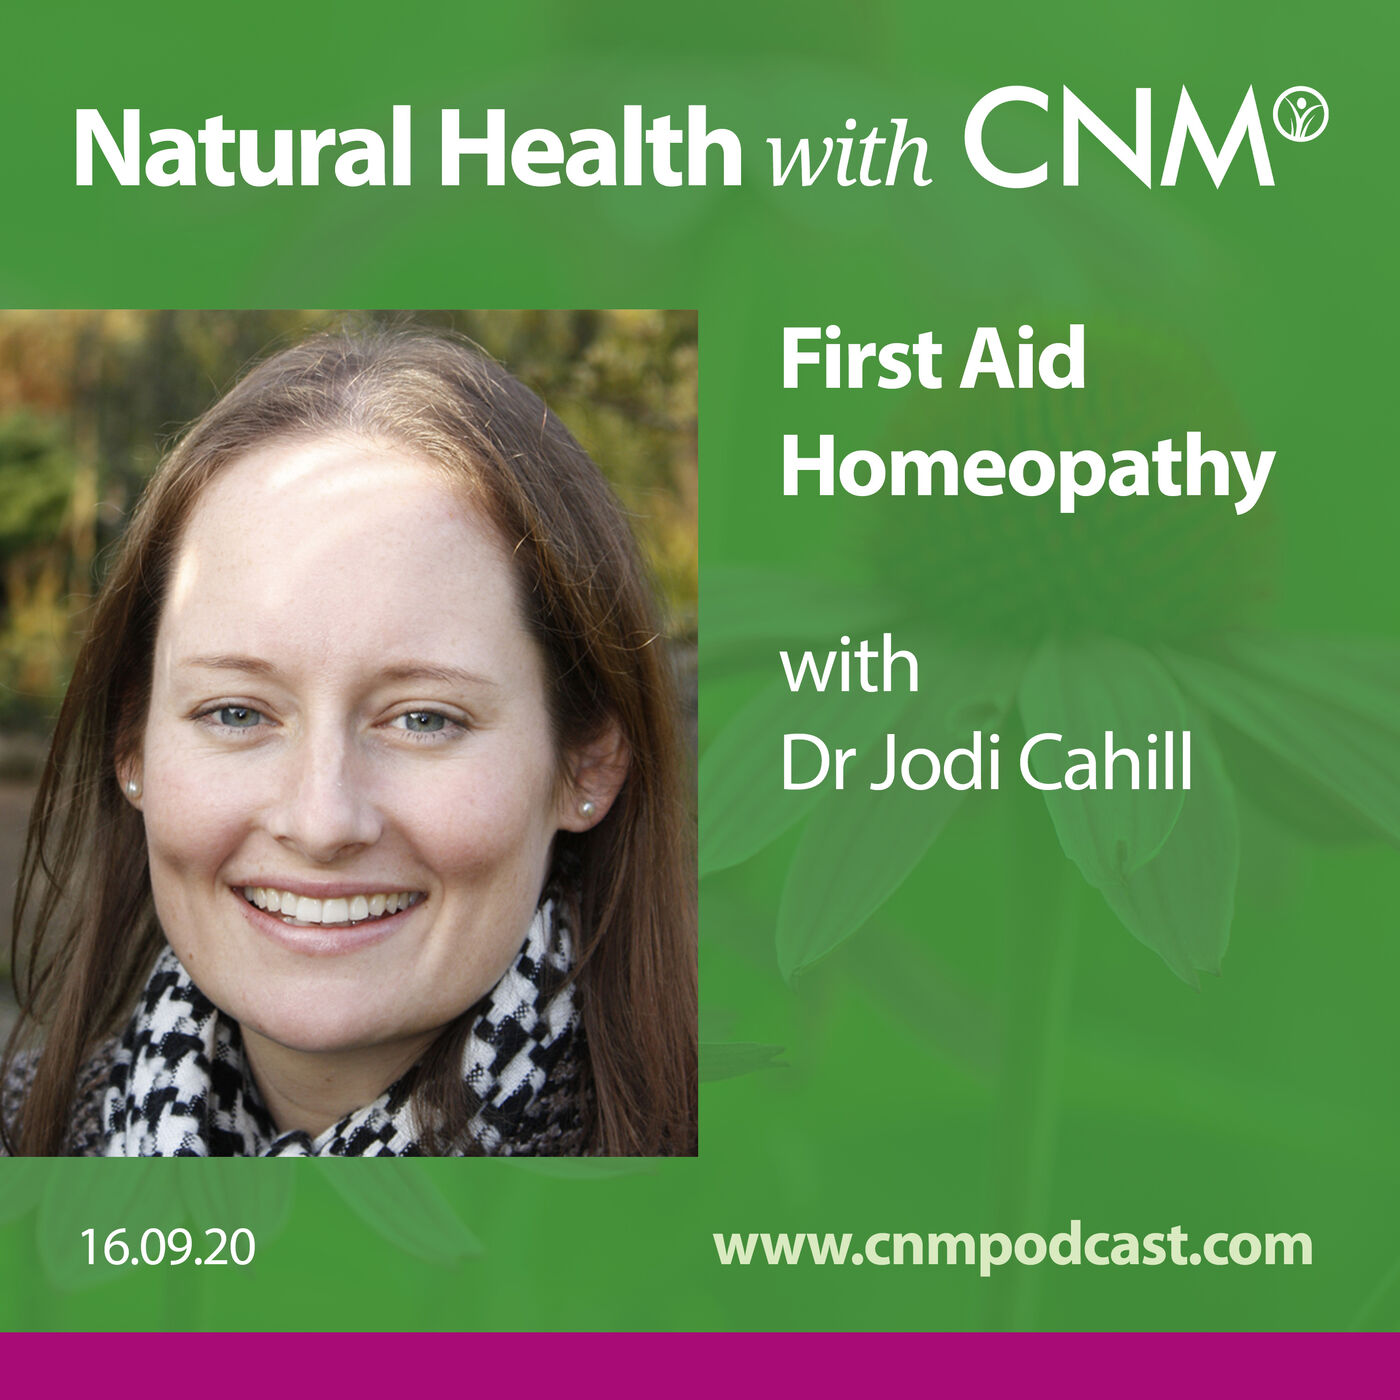 First Aid Homeopathy with Jodi Cahill